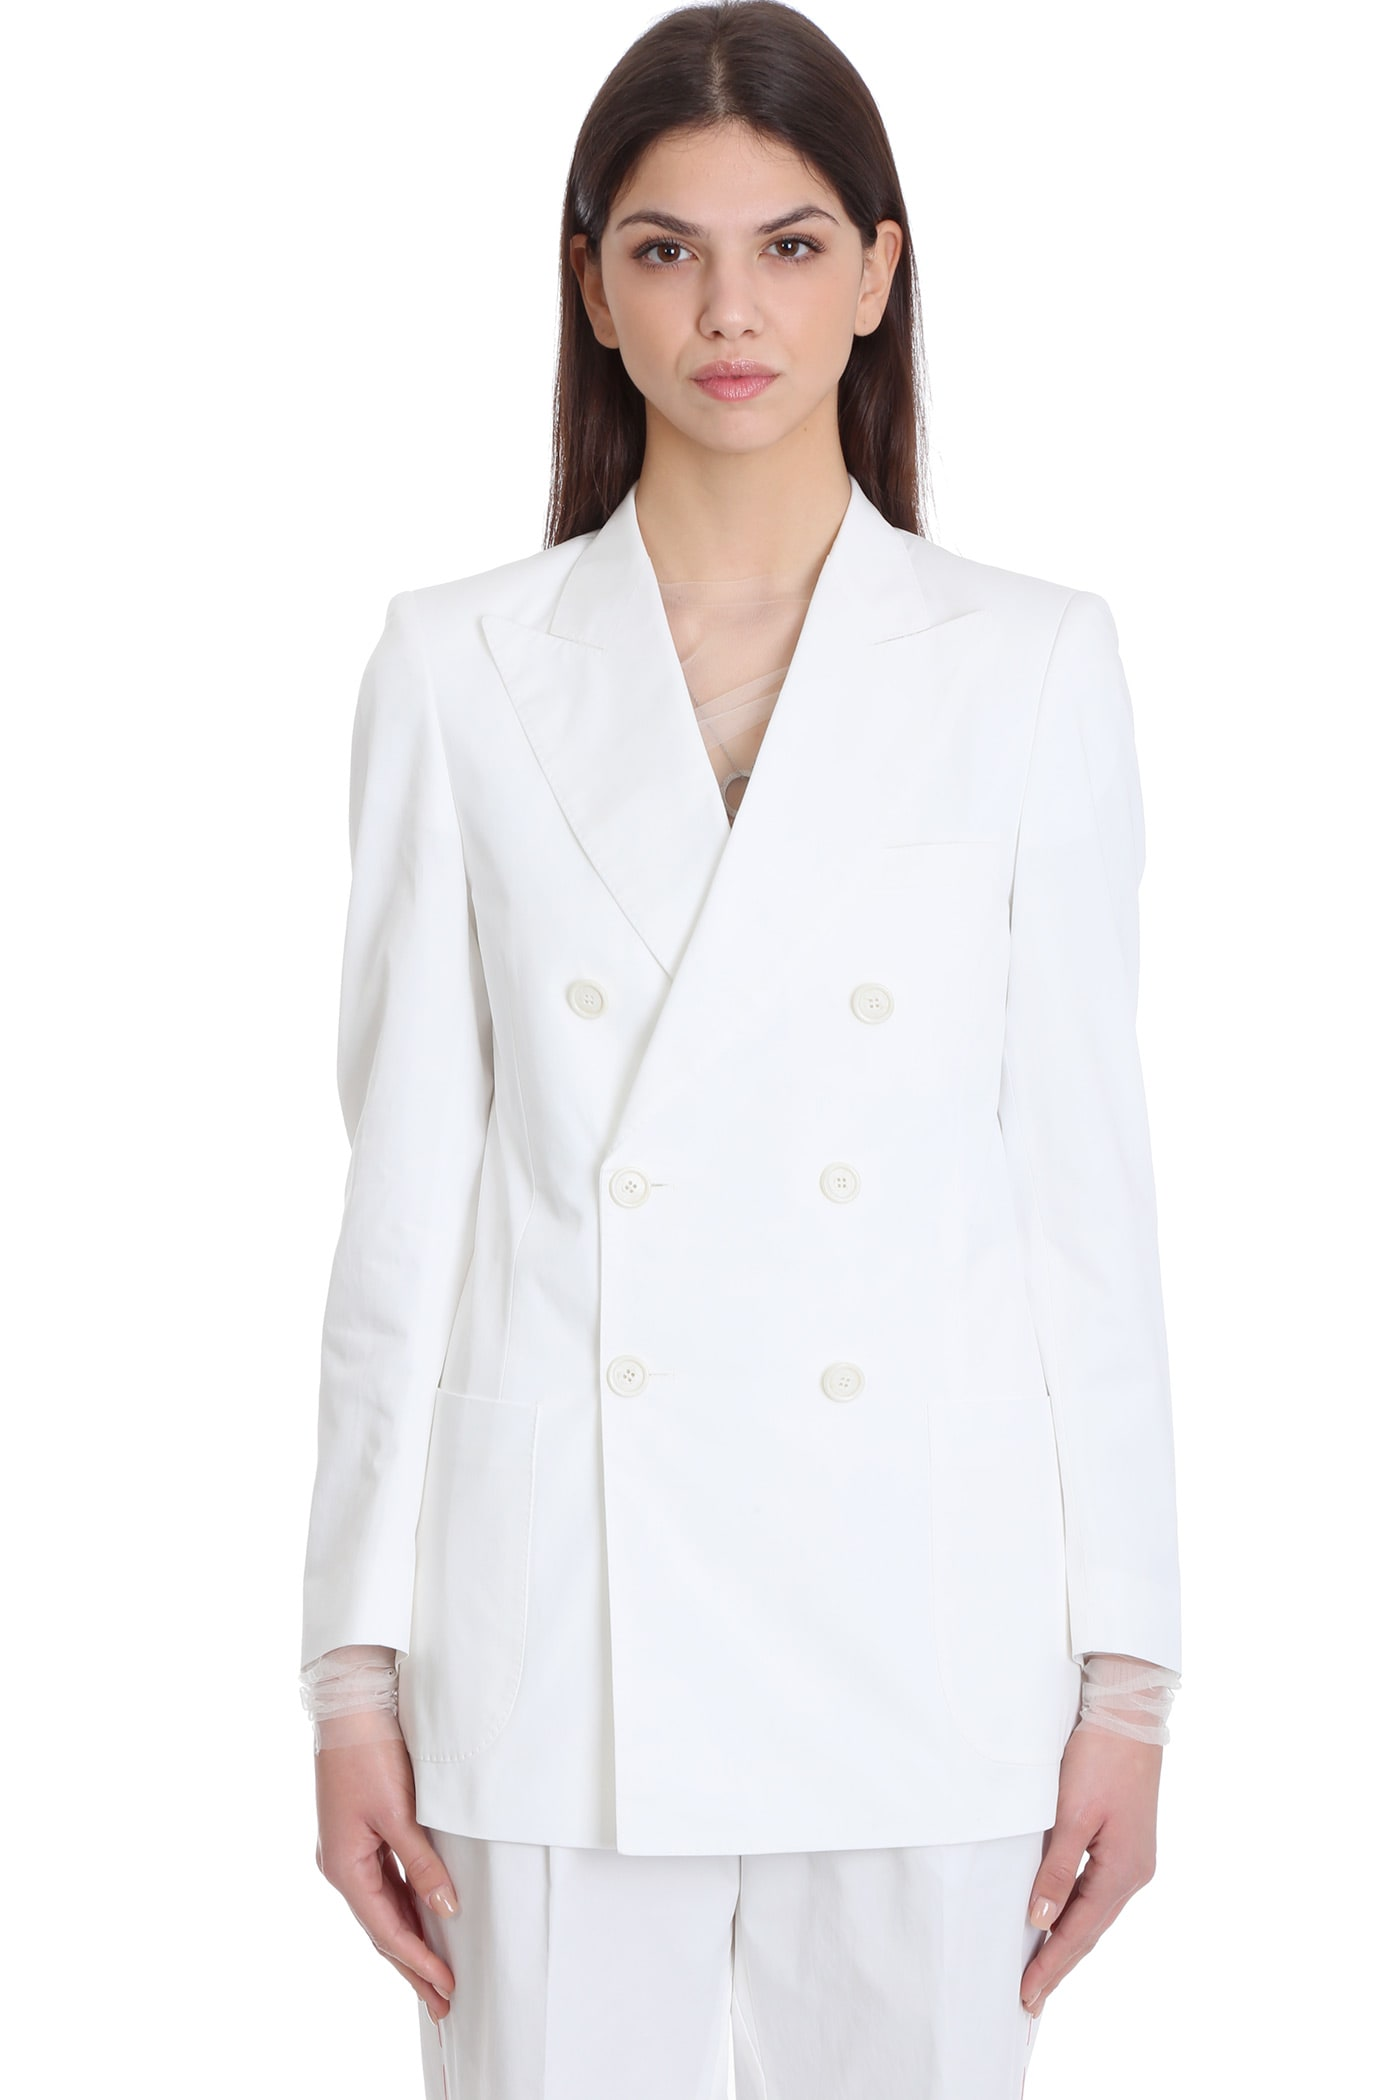 Maison Margiela BLAZER IN WHITE COTTON